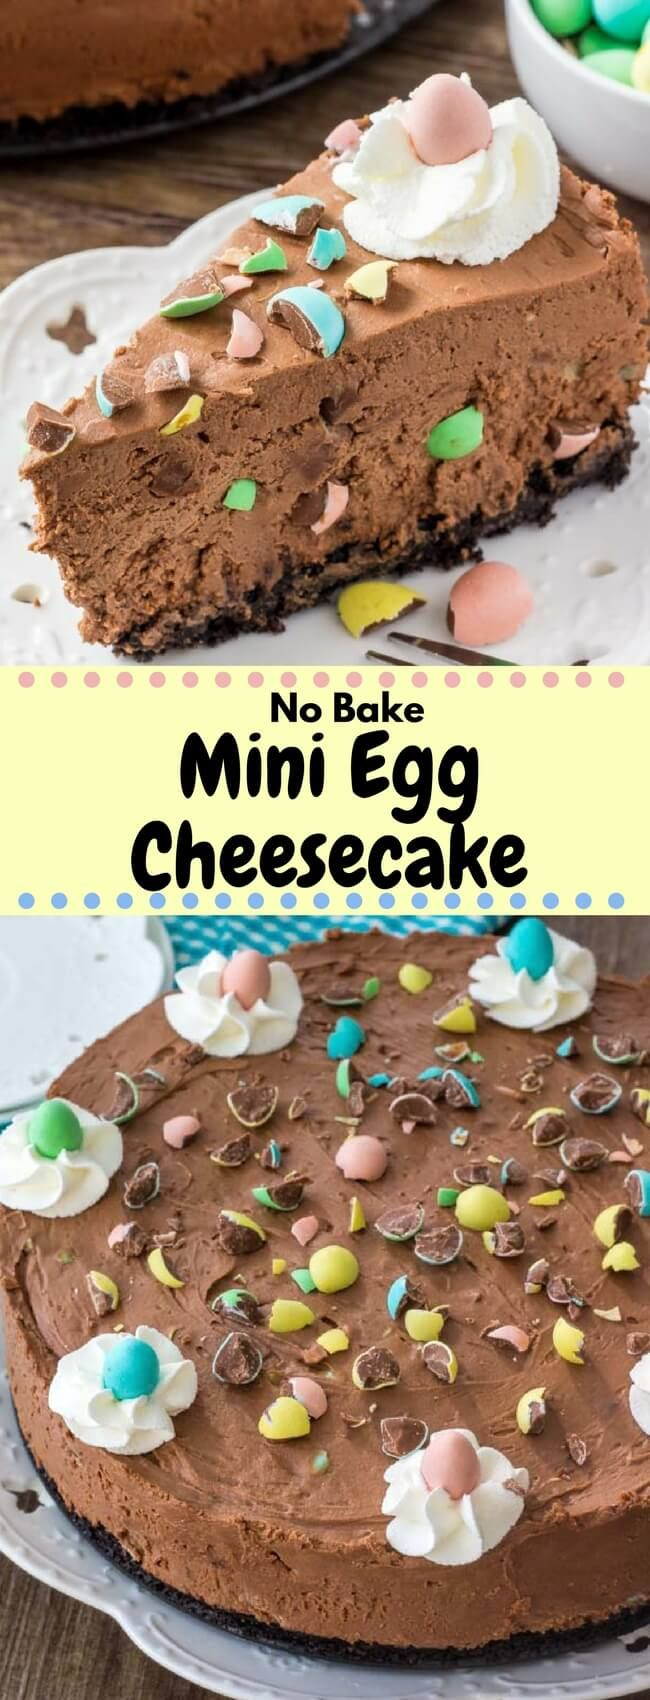 This no-bake mini egg chocolate cheesecake is completely decadent, completely adorable and perfect for Easter. Crunchy Oreo cookie crust, creamy silky smooth chocolate cheesecake, and loaded with mini eggs - it's the one thing you NEED to make this Easter.